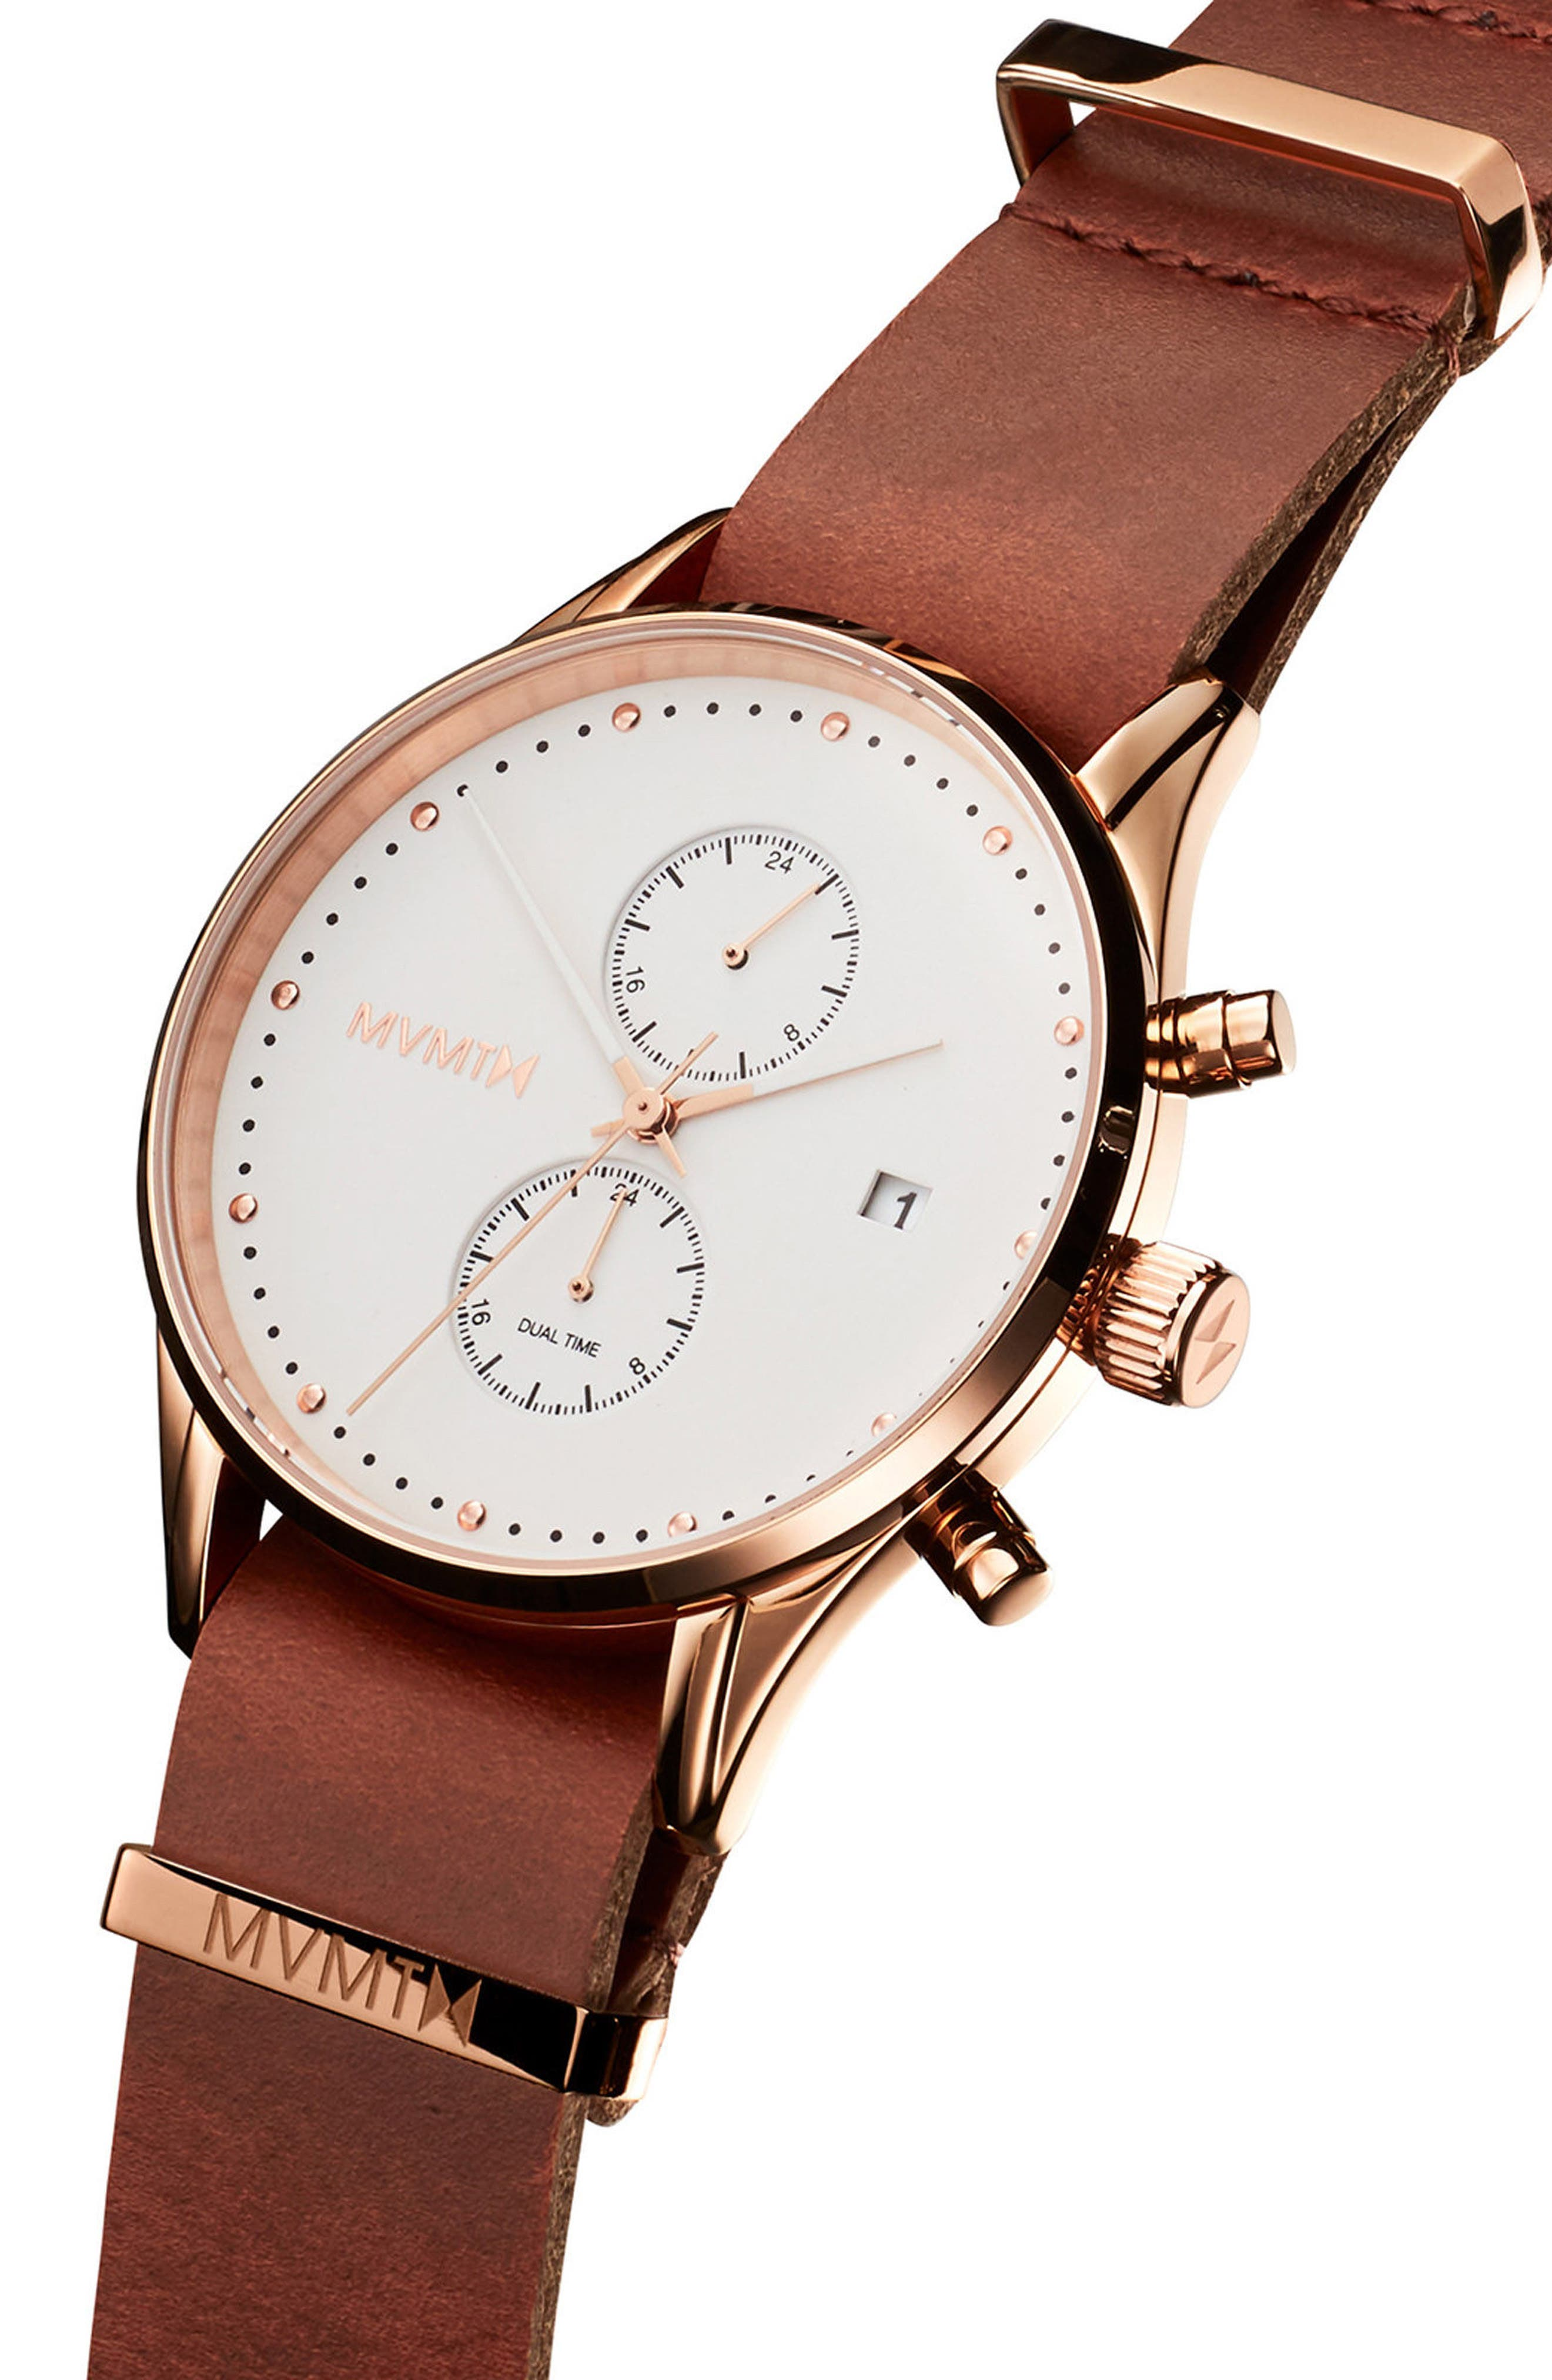 Voyager Chronograph Leather Strap Watch, 42mm,                             Alternate thumbnail 3, color,                             200